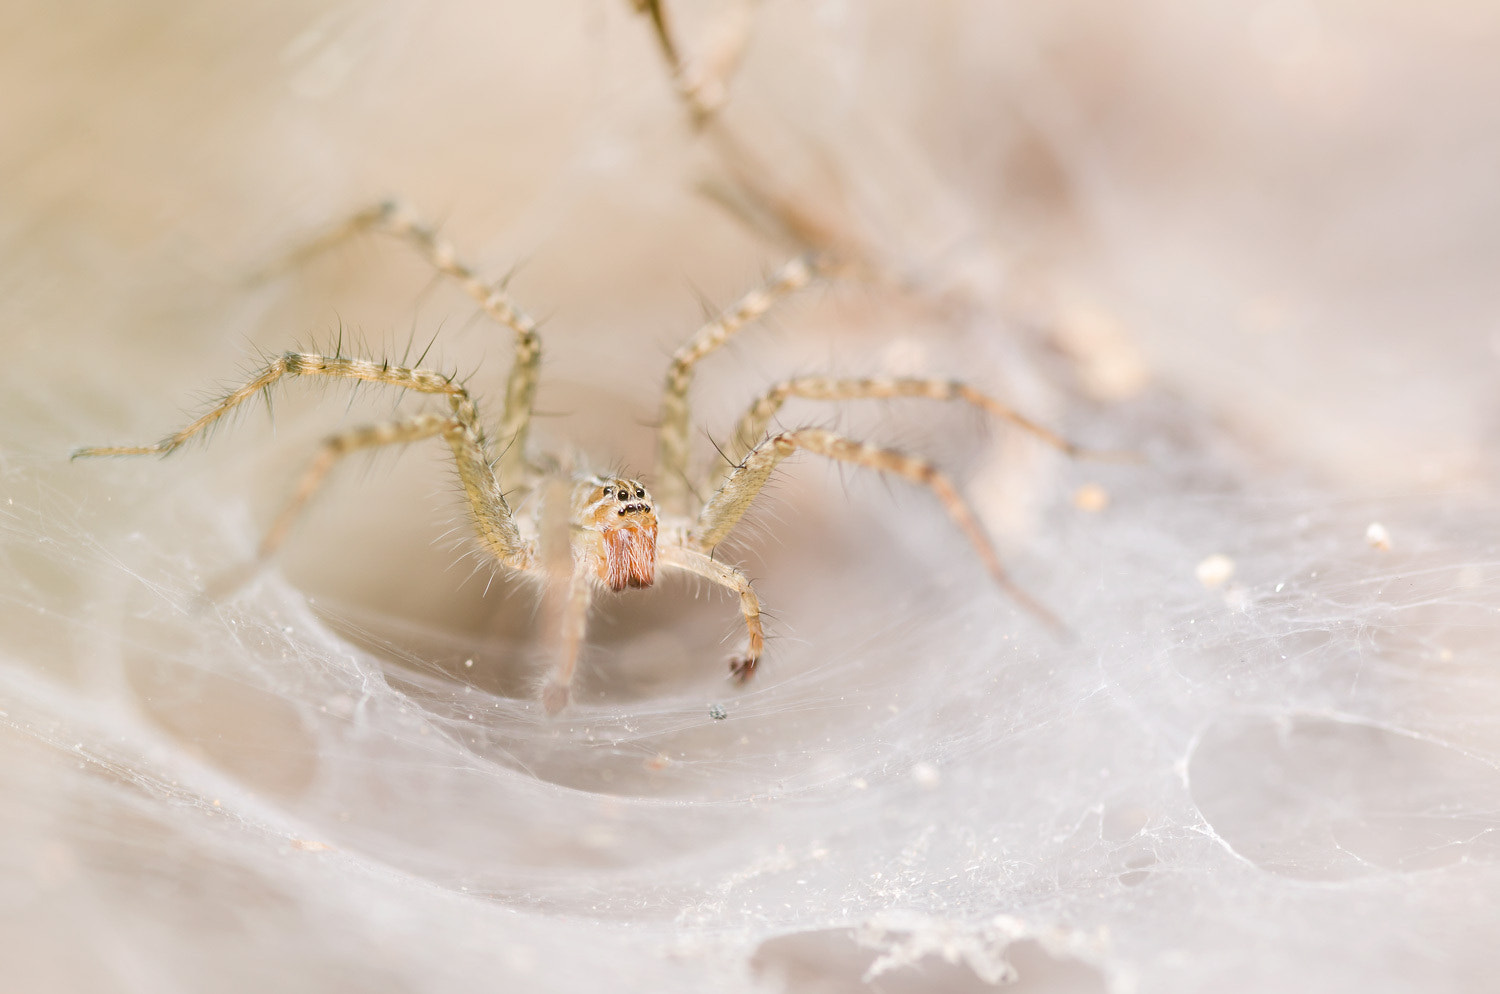 Photograph Wolf spider by Peerasith Chaisanit on 500px